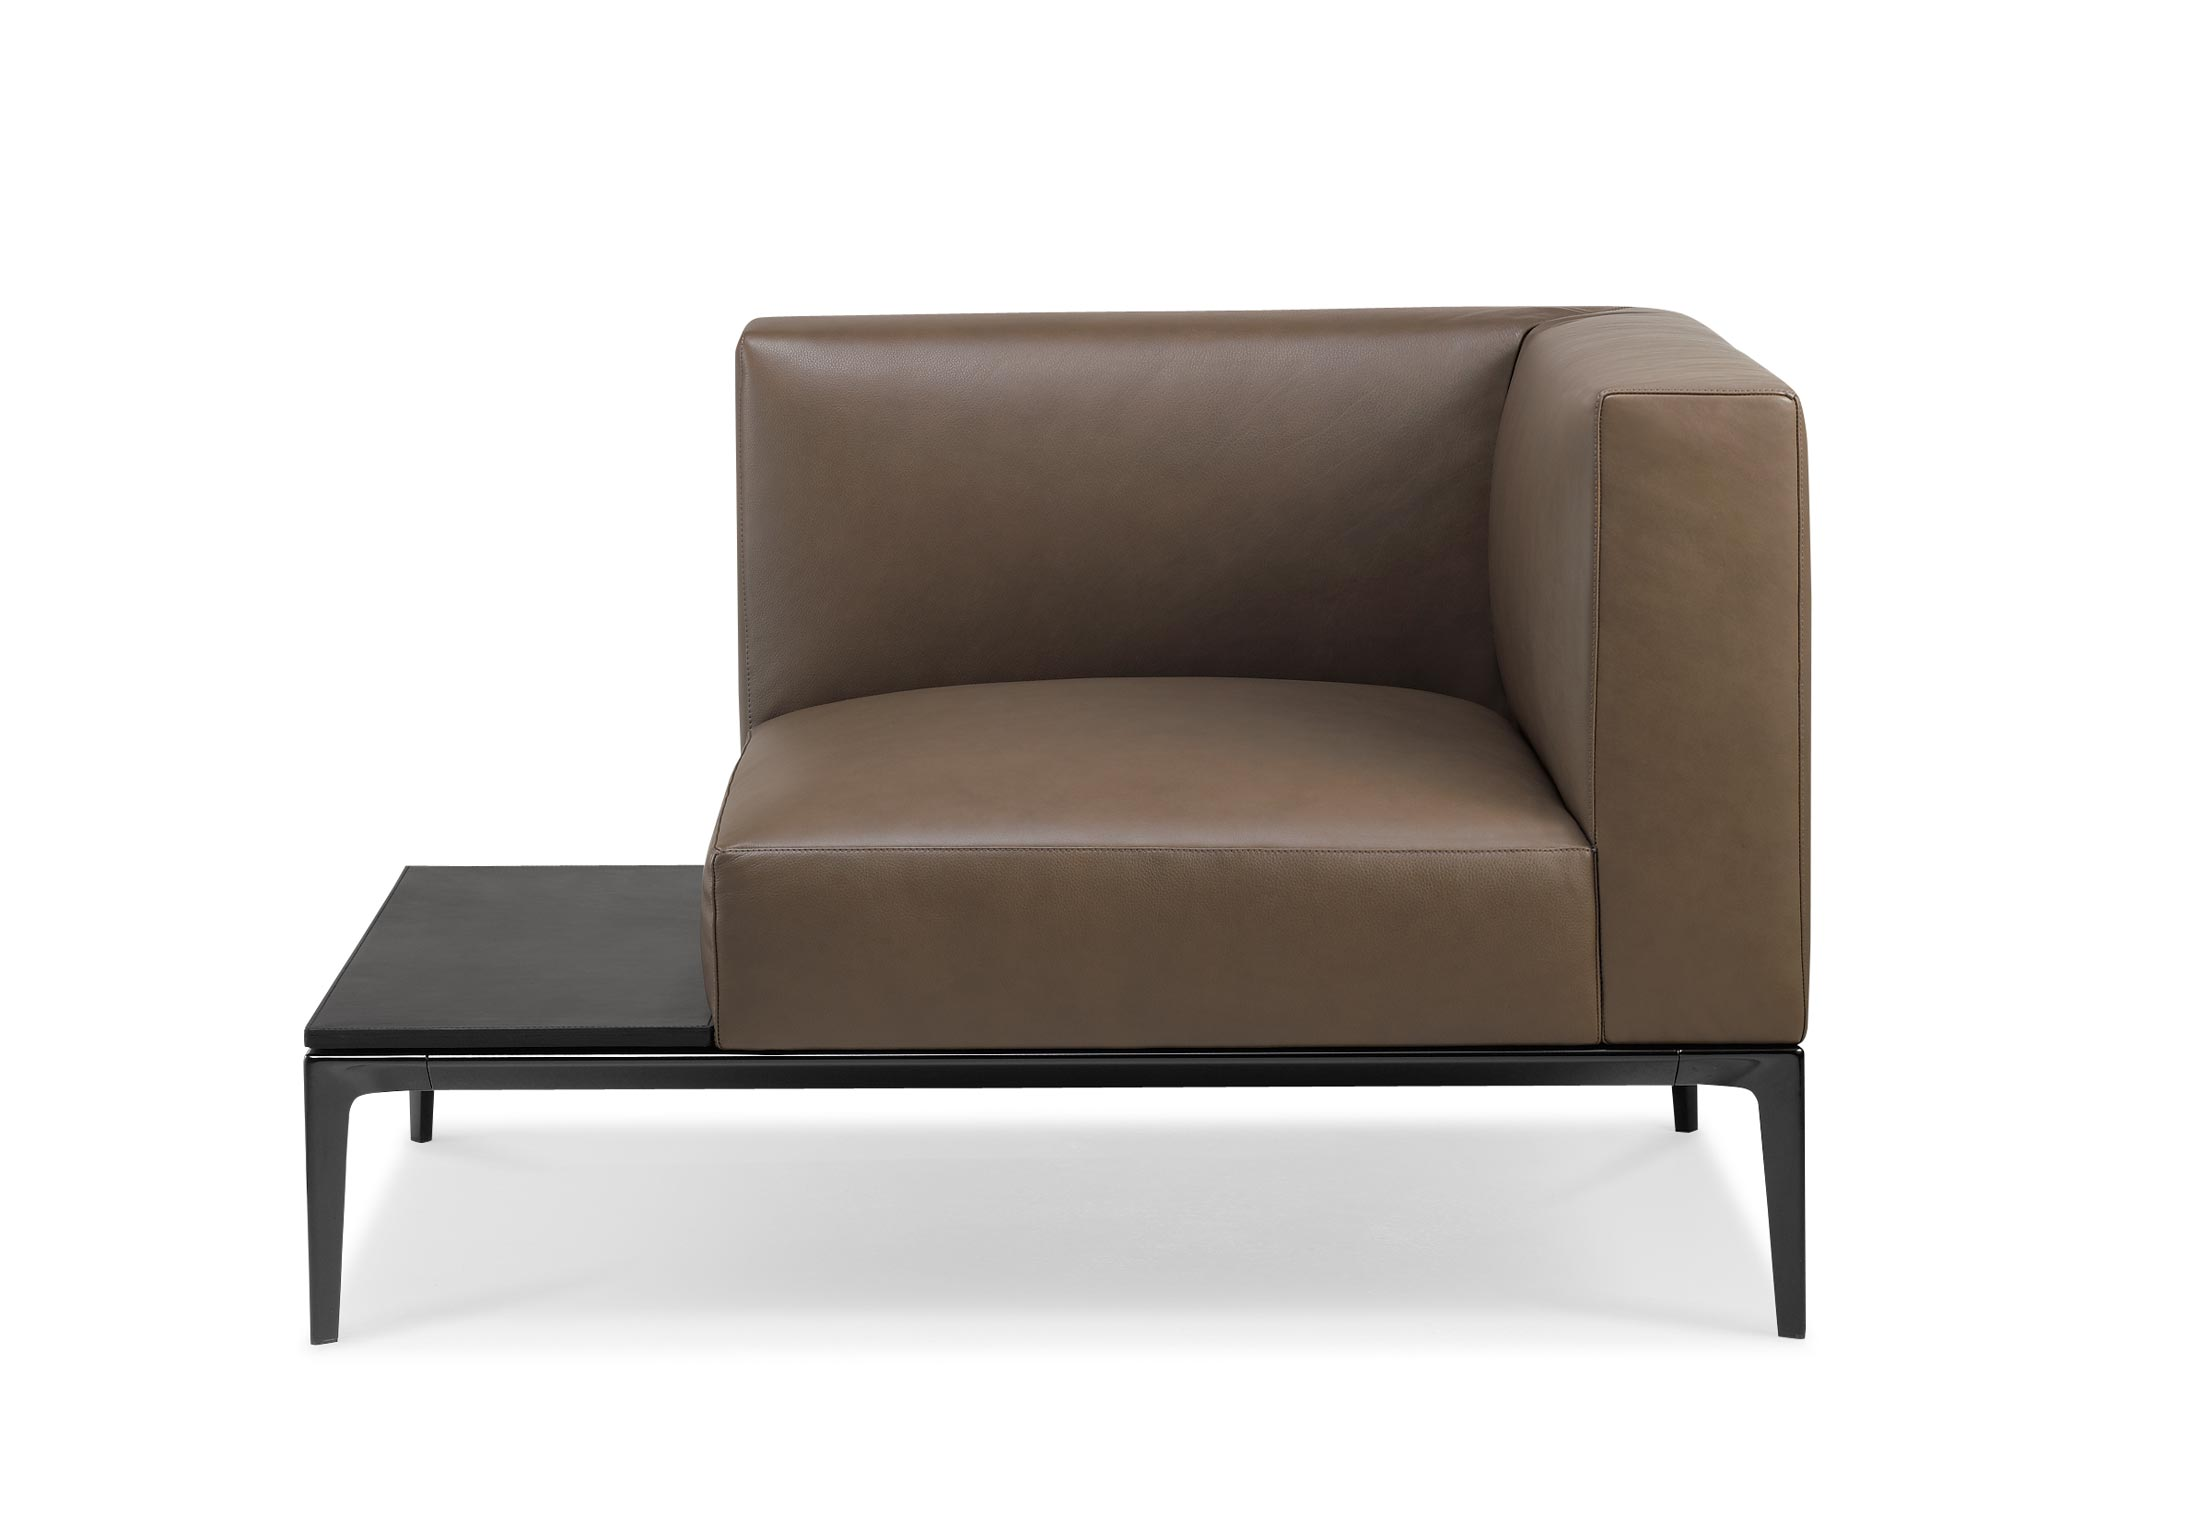 Jaan Living Chaiselongues By Walter Knoll Stylepark